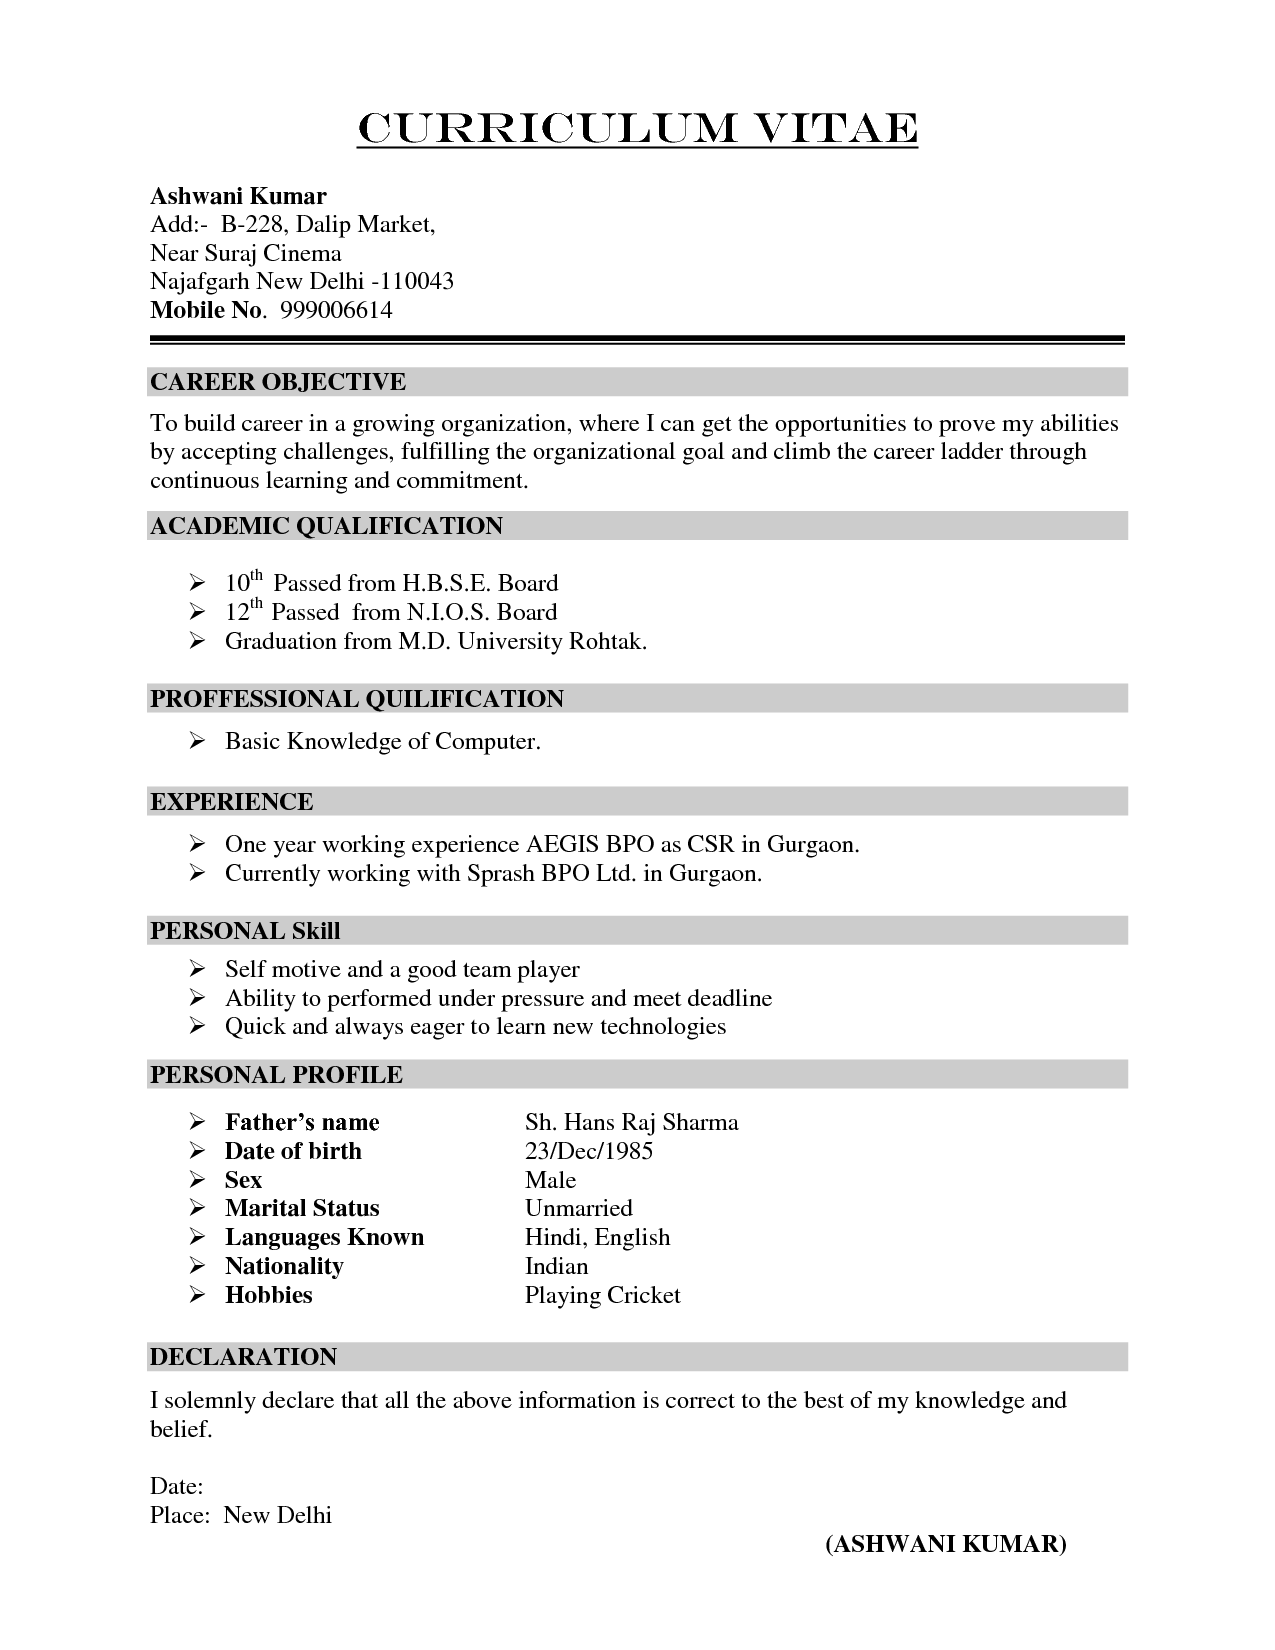 sample cv and resume curriculum vitae template cv resume sample ...